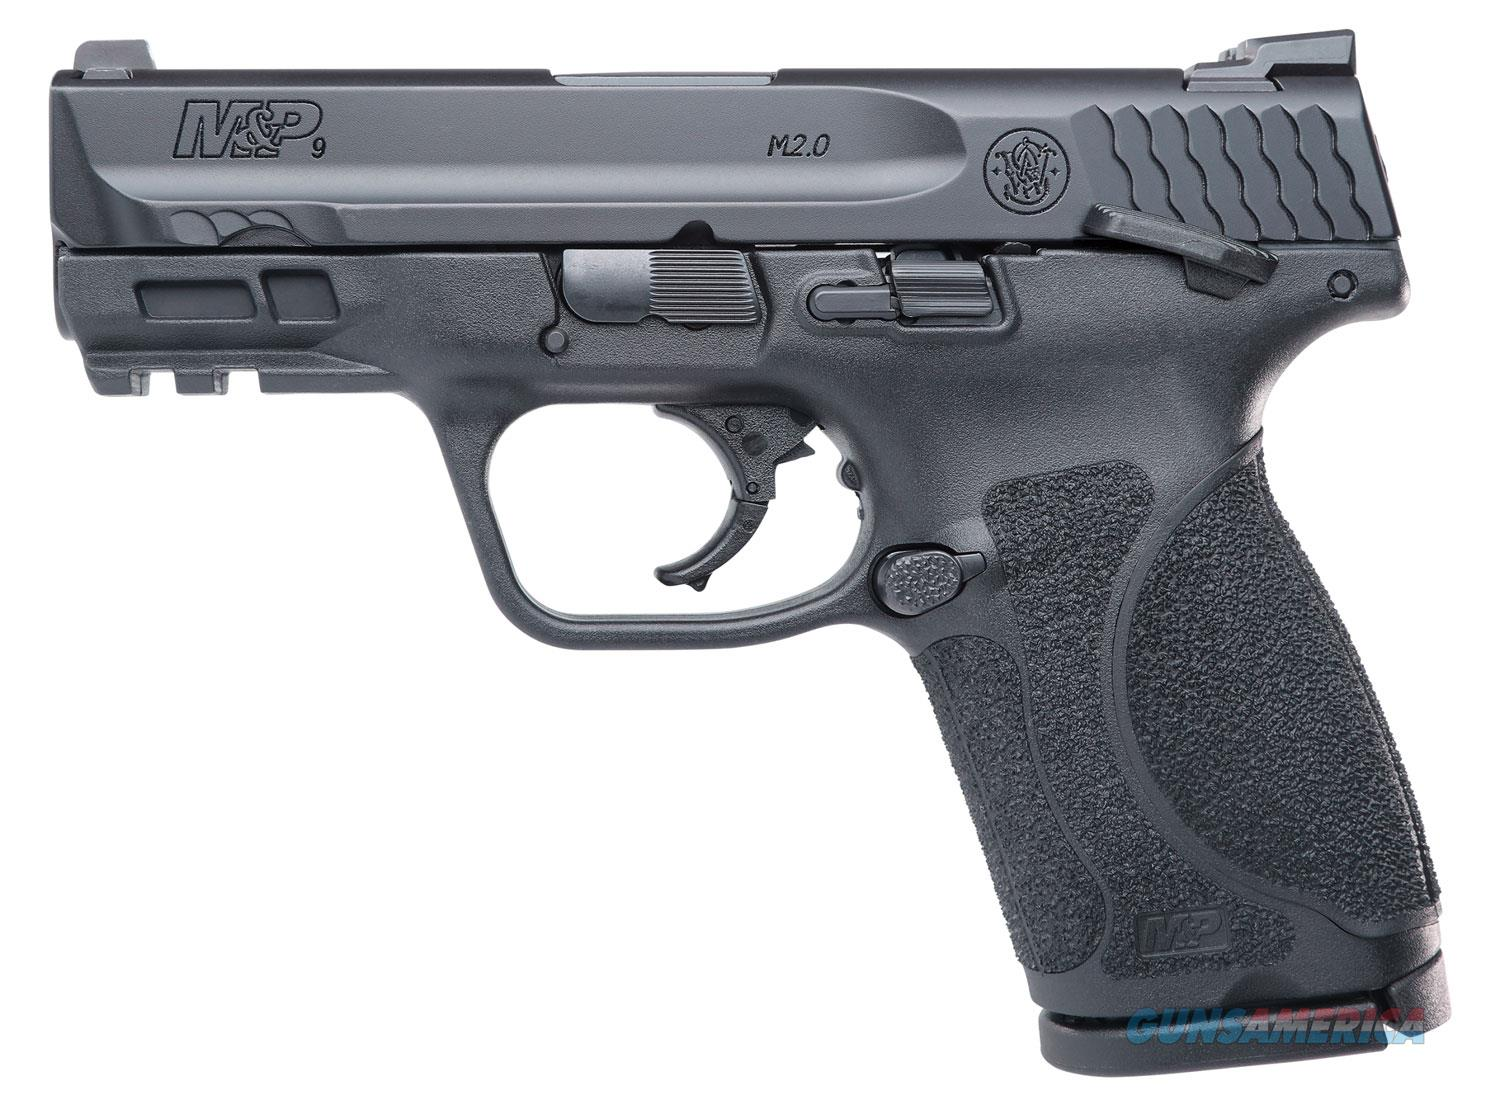 """SMITH AND WESSON M&P9 M2.0 COMPACT 3.6"""" SAFETY NO CREDIT CARD FEE   Guns > Pistols > Smith & Wesson Pistols - Autos > Polymer Frame"""